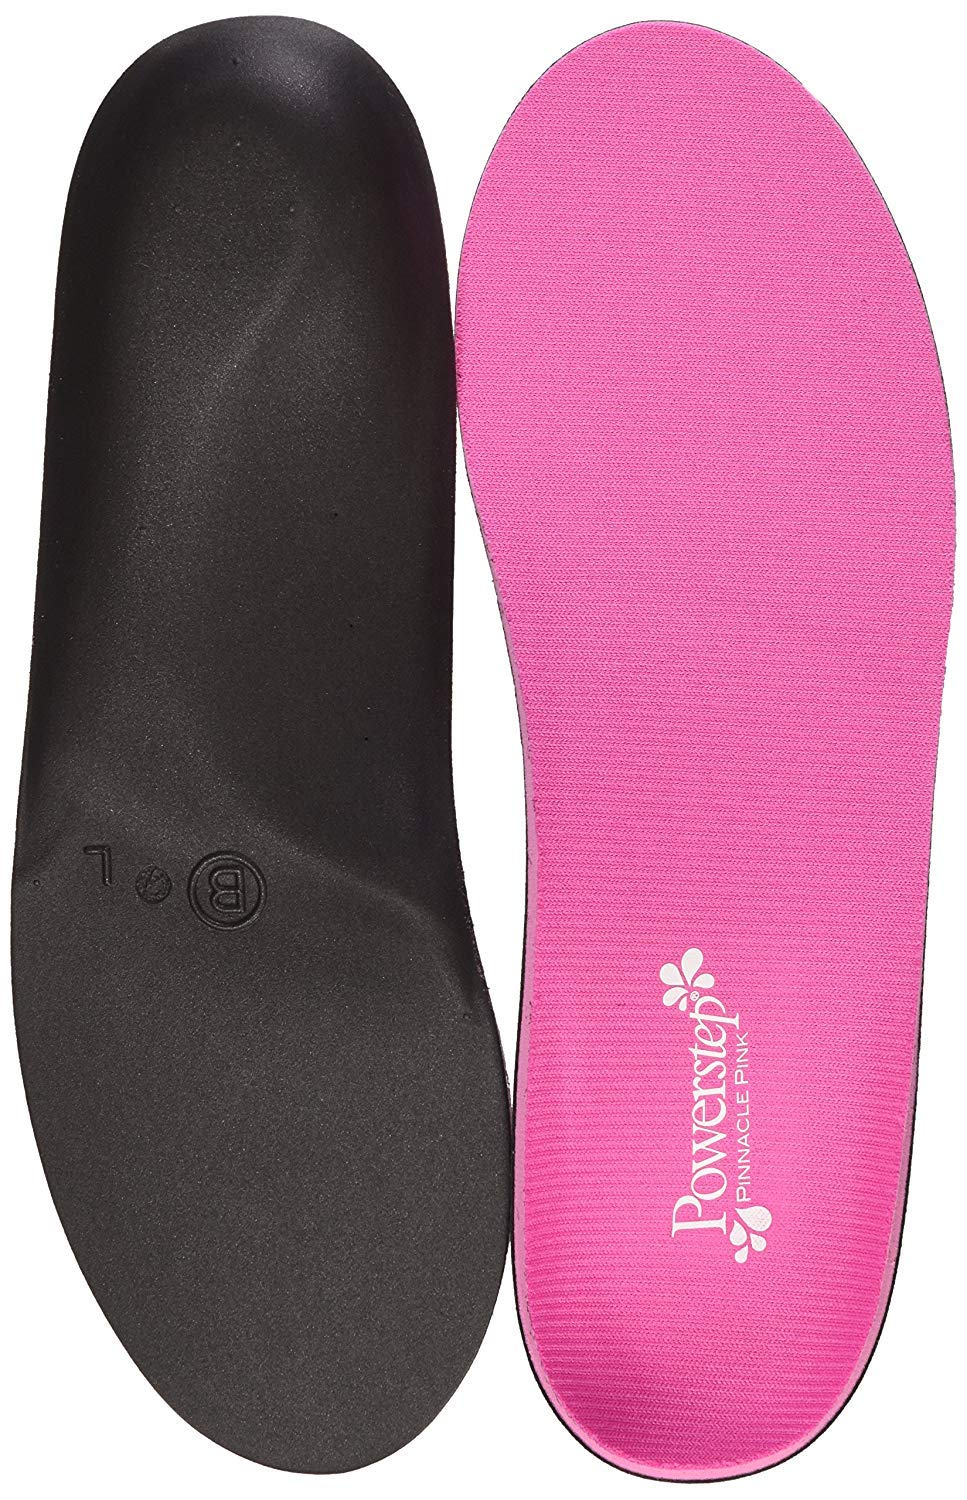 Powerstep Pinnacle Insoles Womens 9 9 5